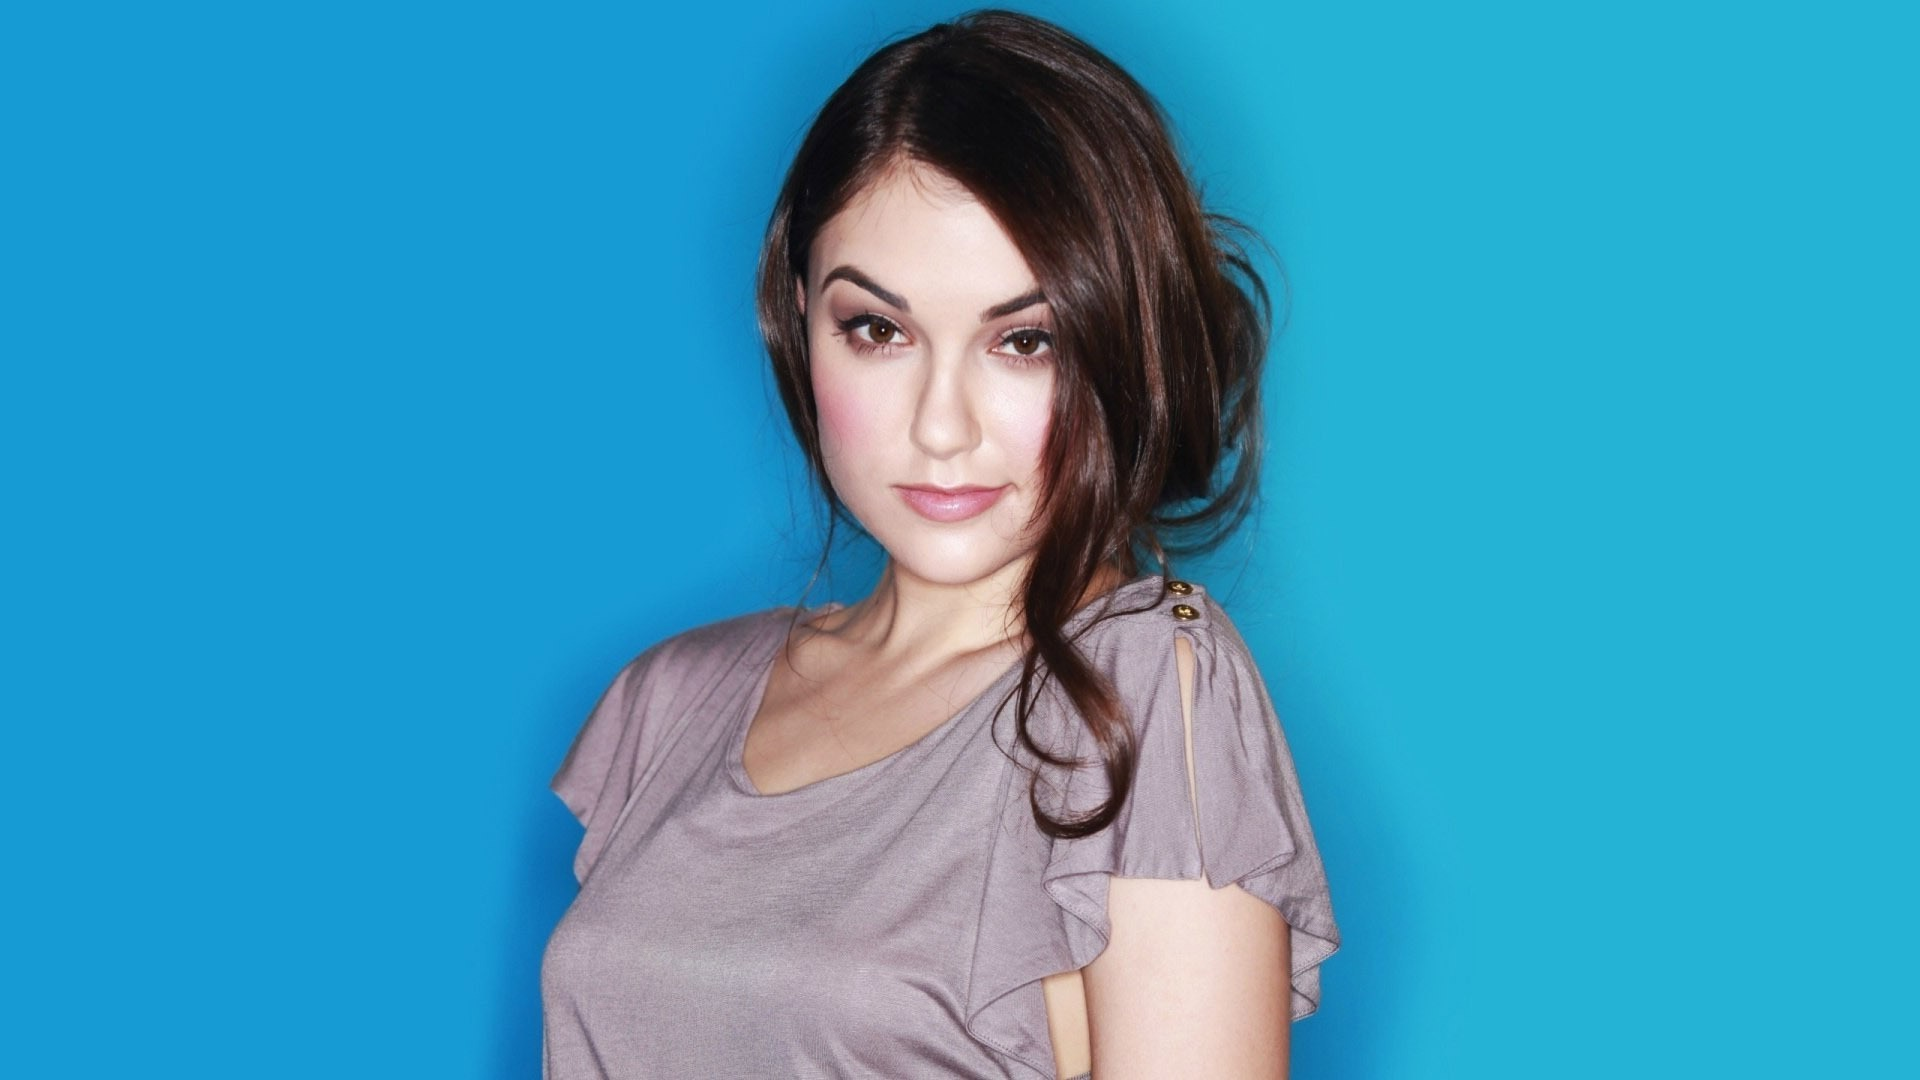 sasha grey wallpaper 68345